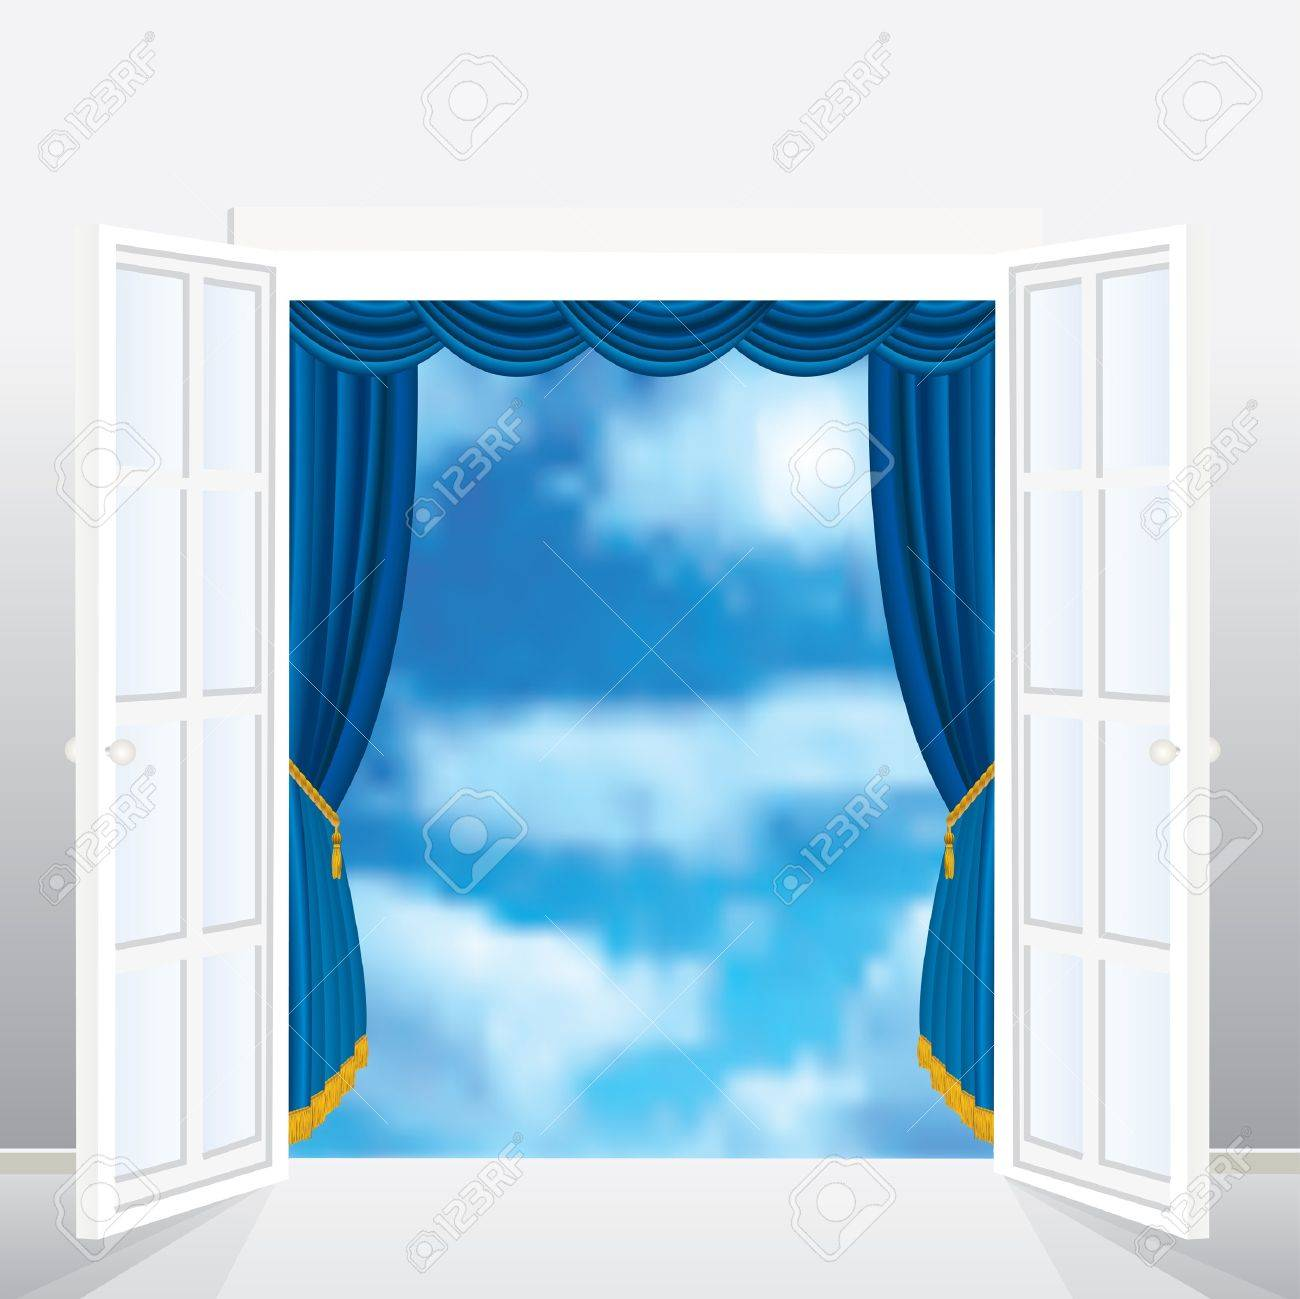 abstract vector composition with french window and curtain Stock Vector - 9705423